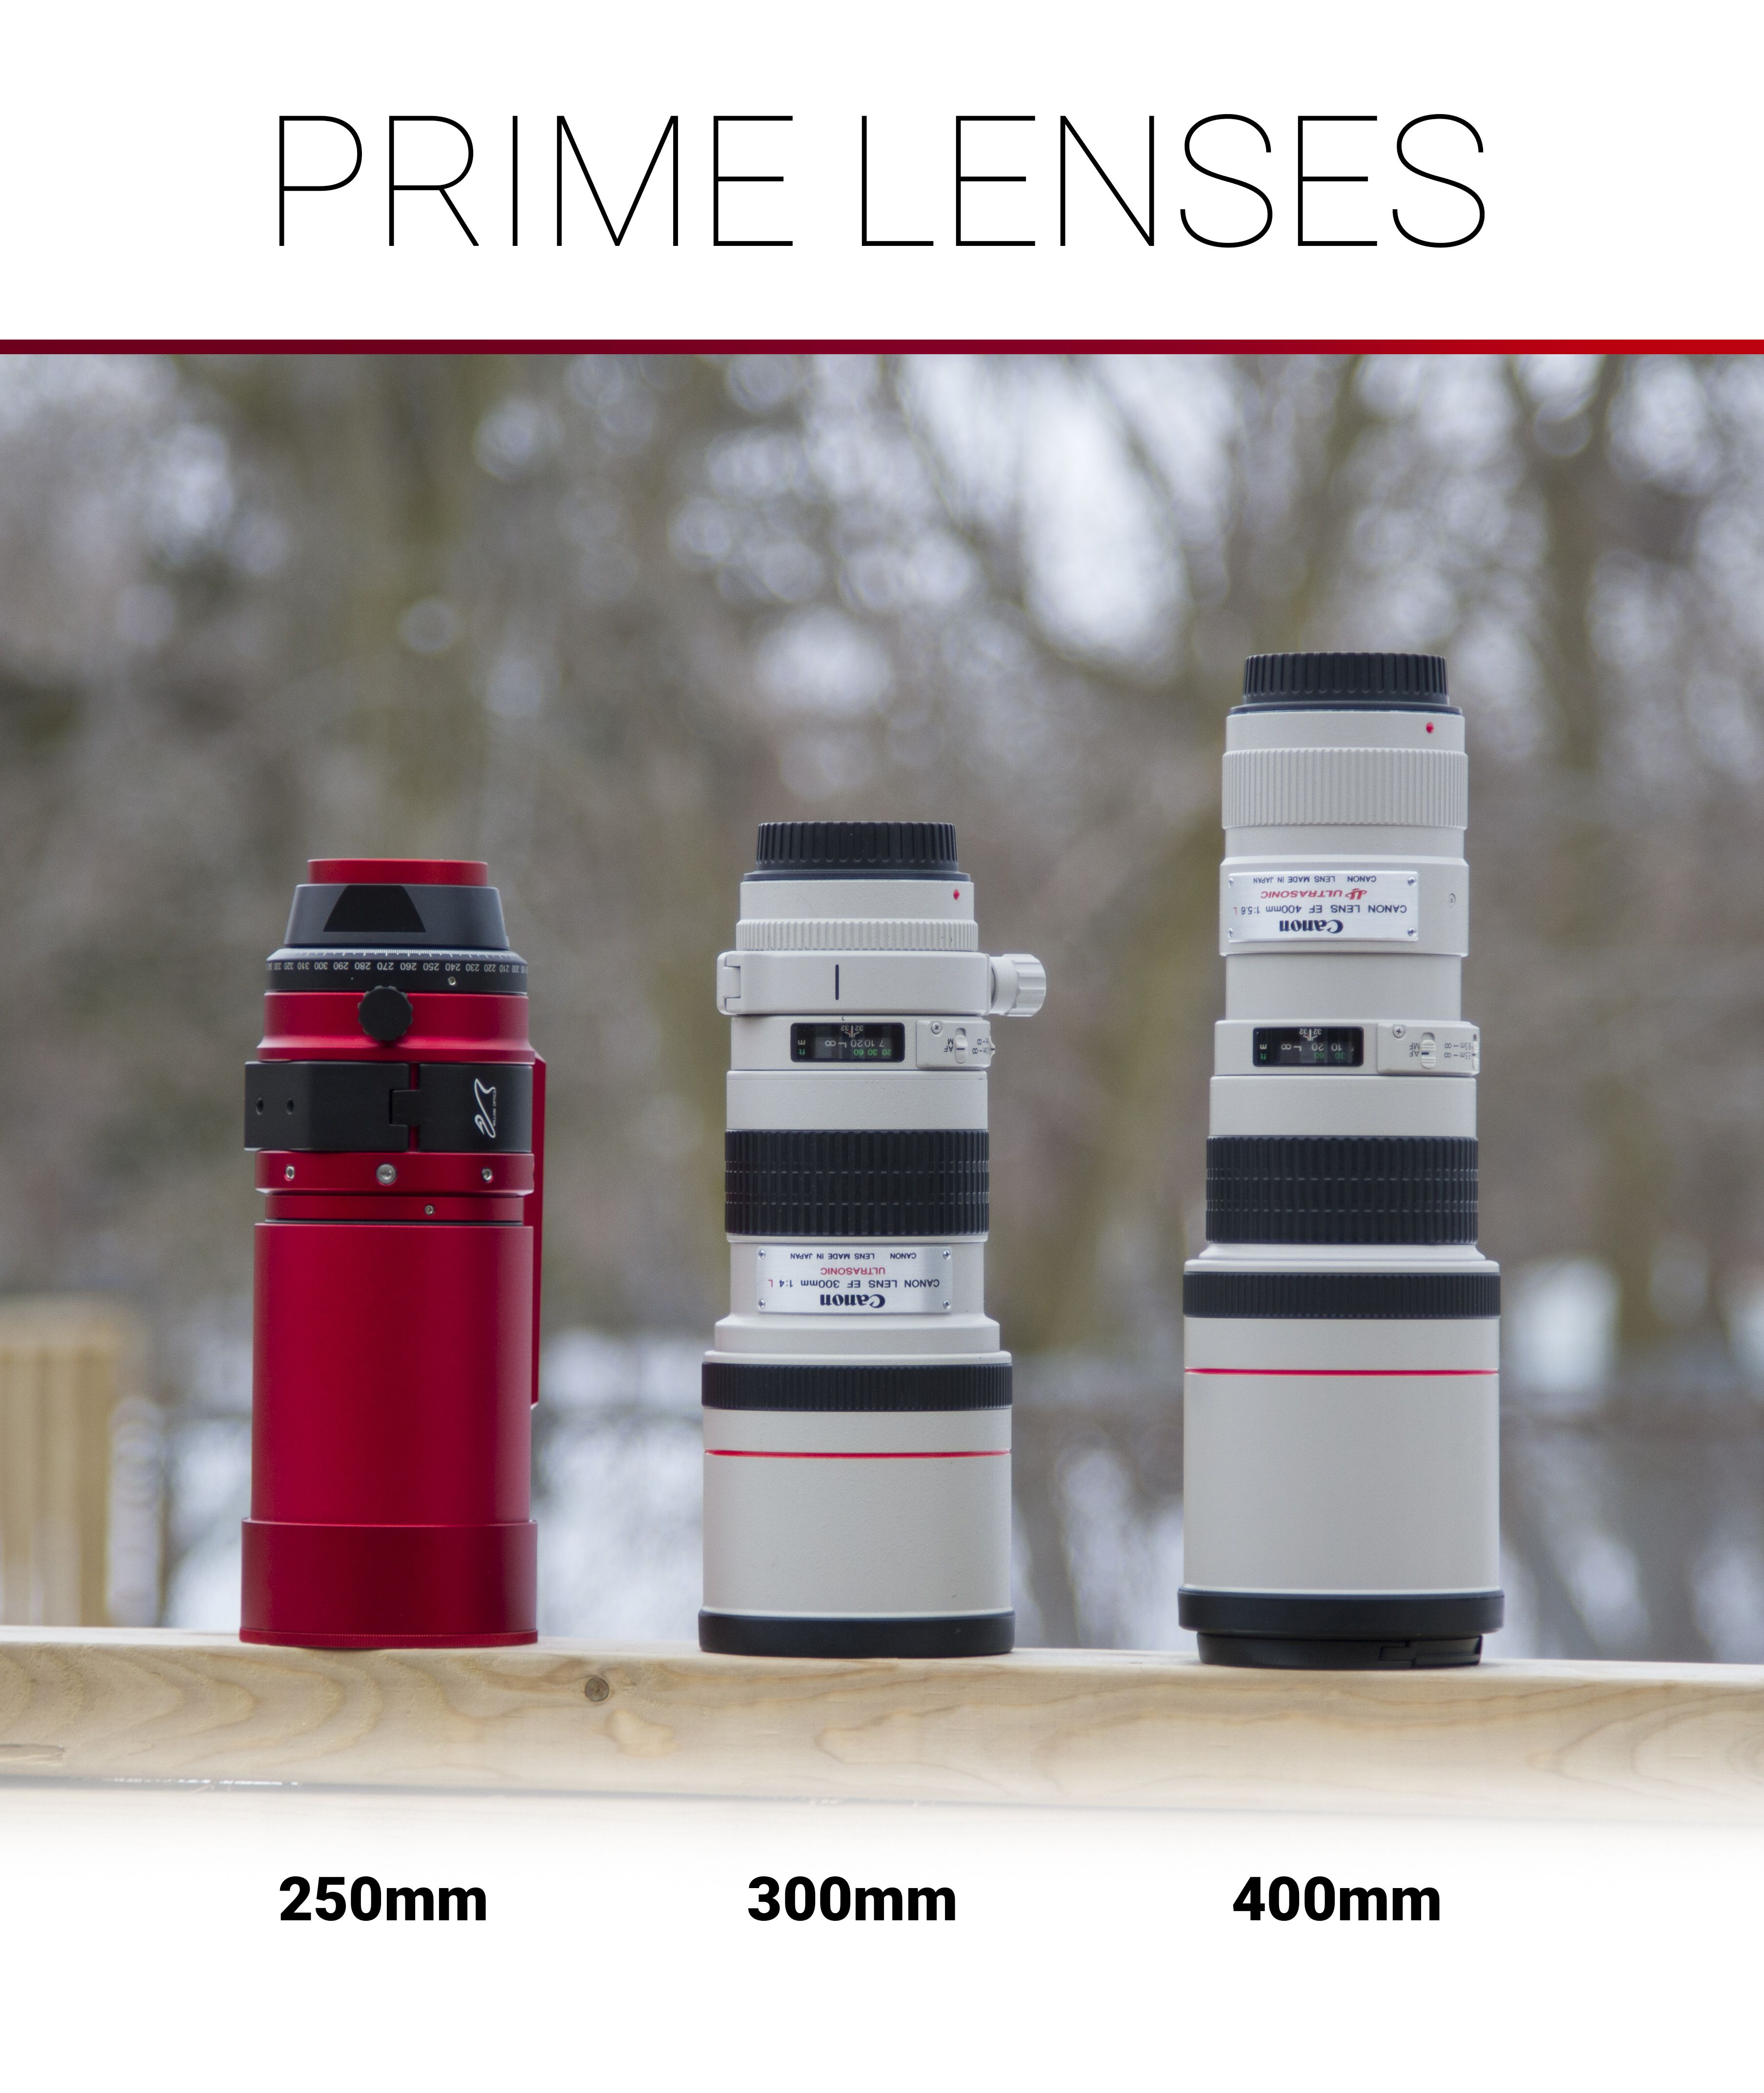 William Optics Redcat 51 Review The Ultimate Portable Petzval Apo Astrophotography Prime Lens Digital Photography Basics